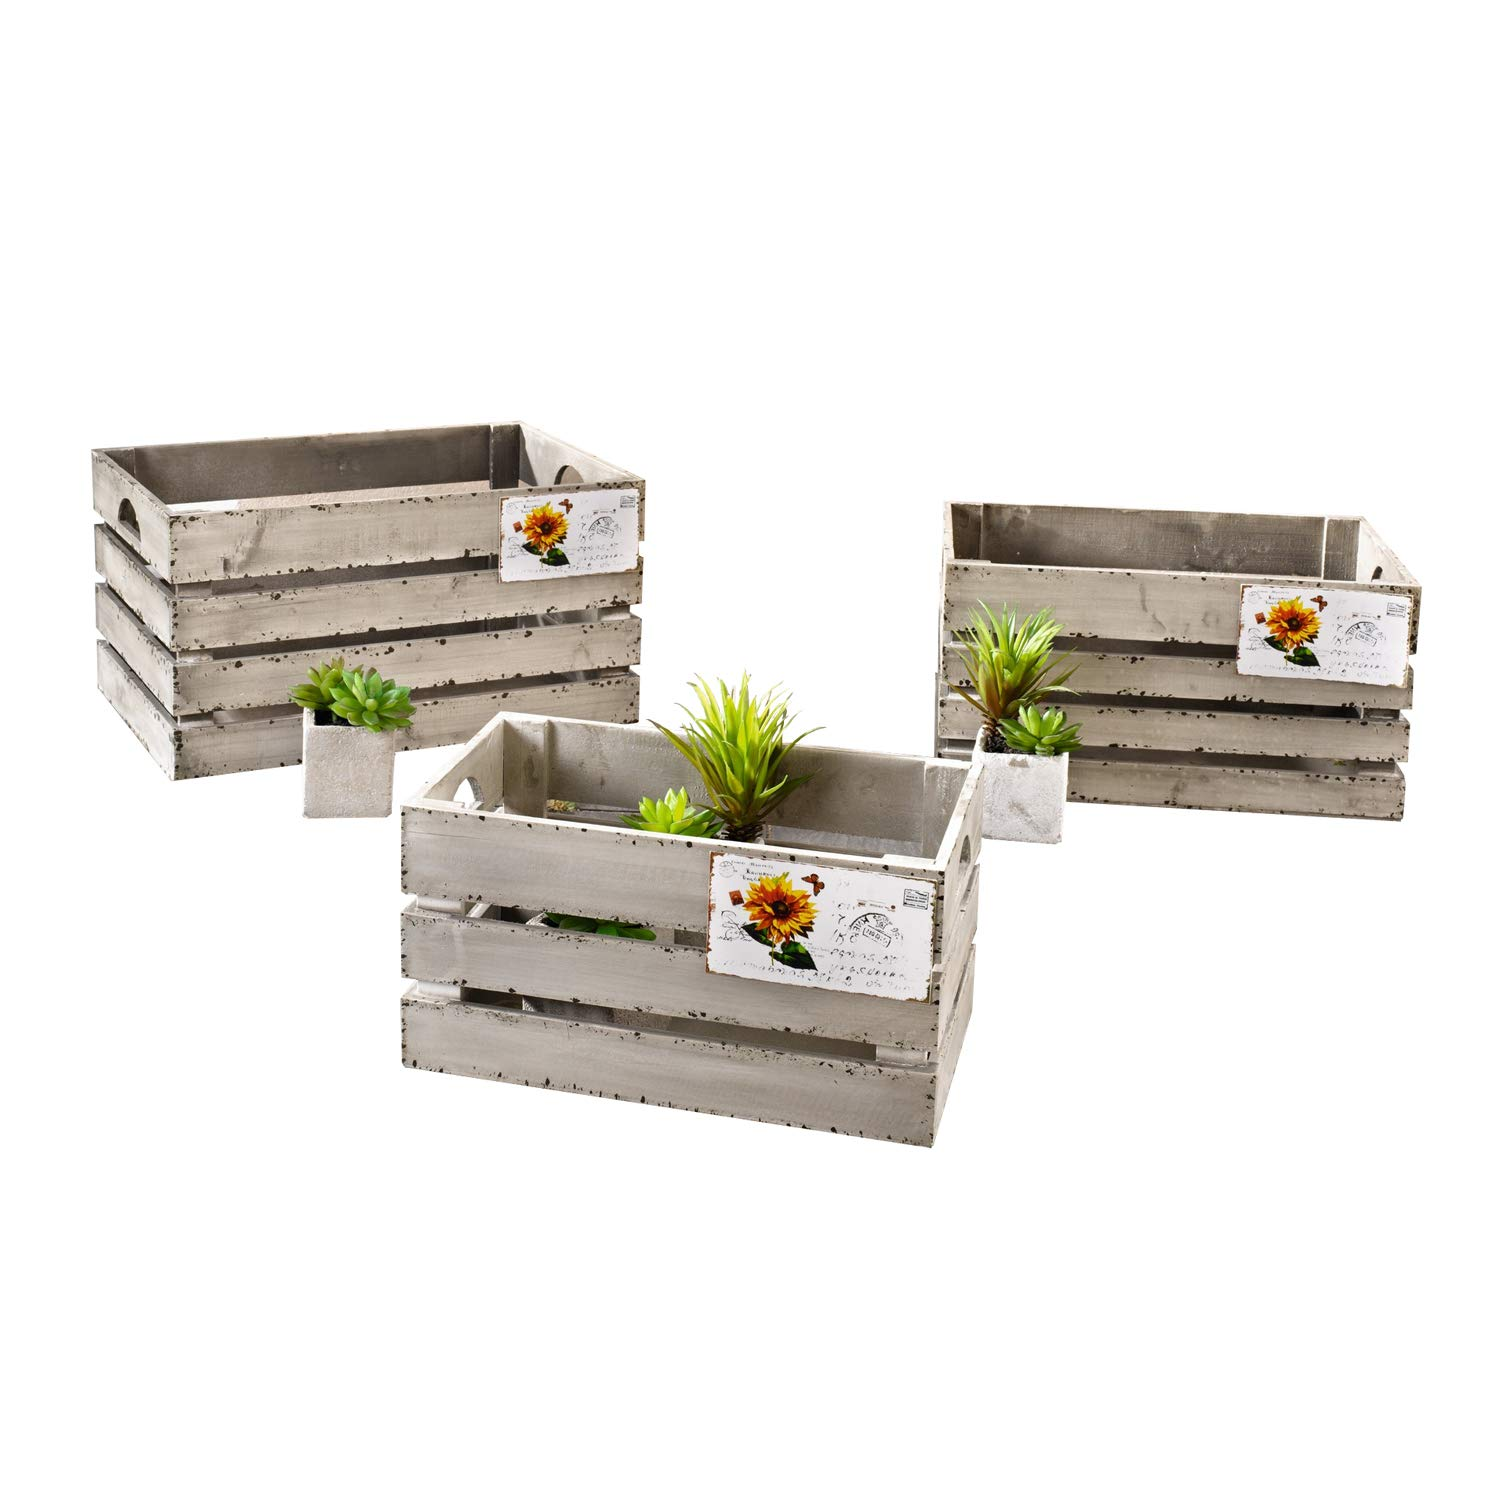 Decorative Wooden Crate''Postcard'', Set of Three Product SKU: HD221636 by PierSurplus